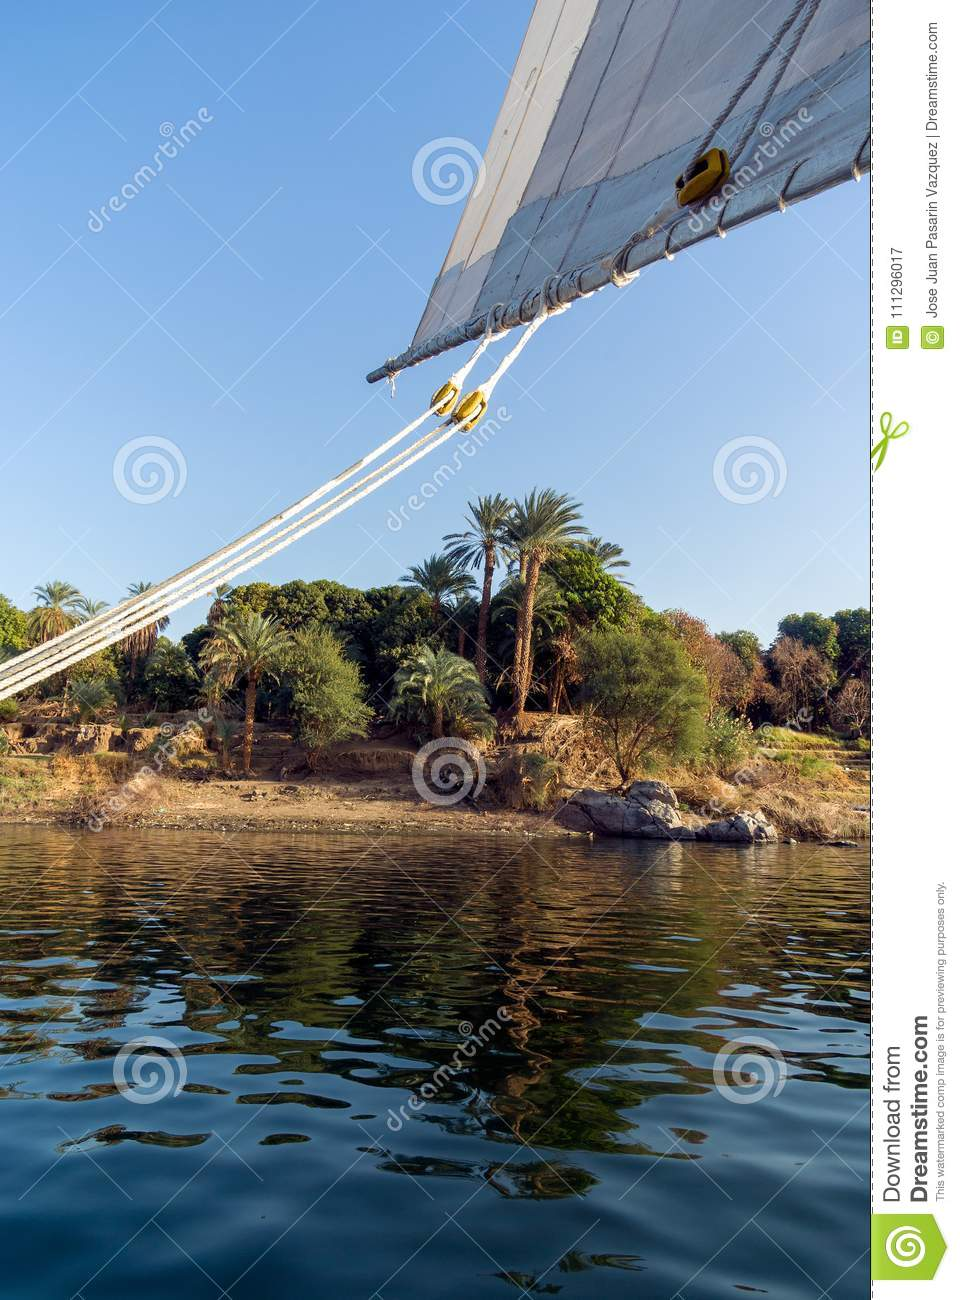 Wooden ropes and pulleys of the sail of a typical boat called Felucca on the Nile River in Africa, with shores lined with palm tre